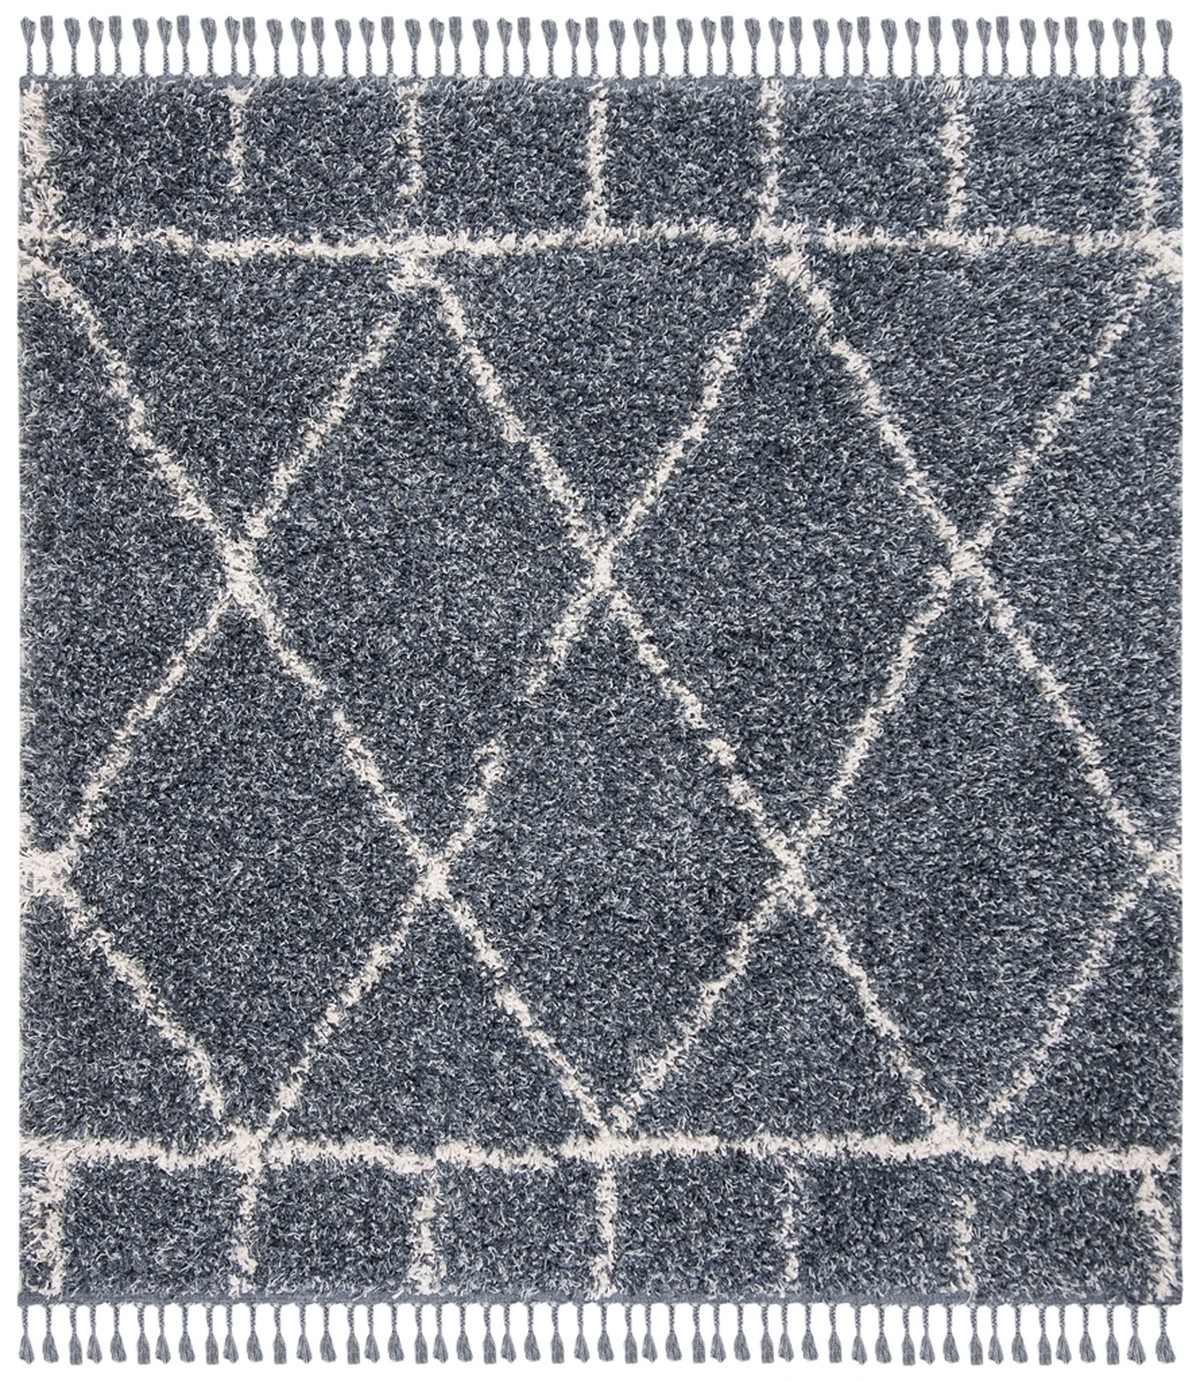 Rug Plx433l Pro Lux Shag Area Rugs By Safavieh